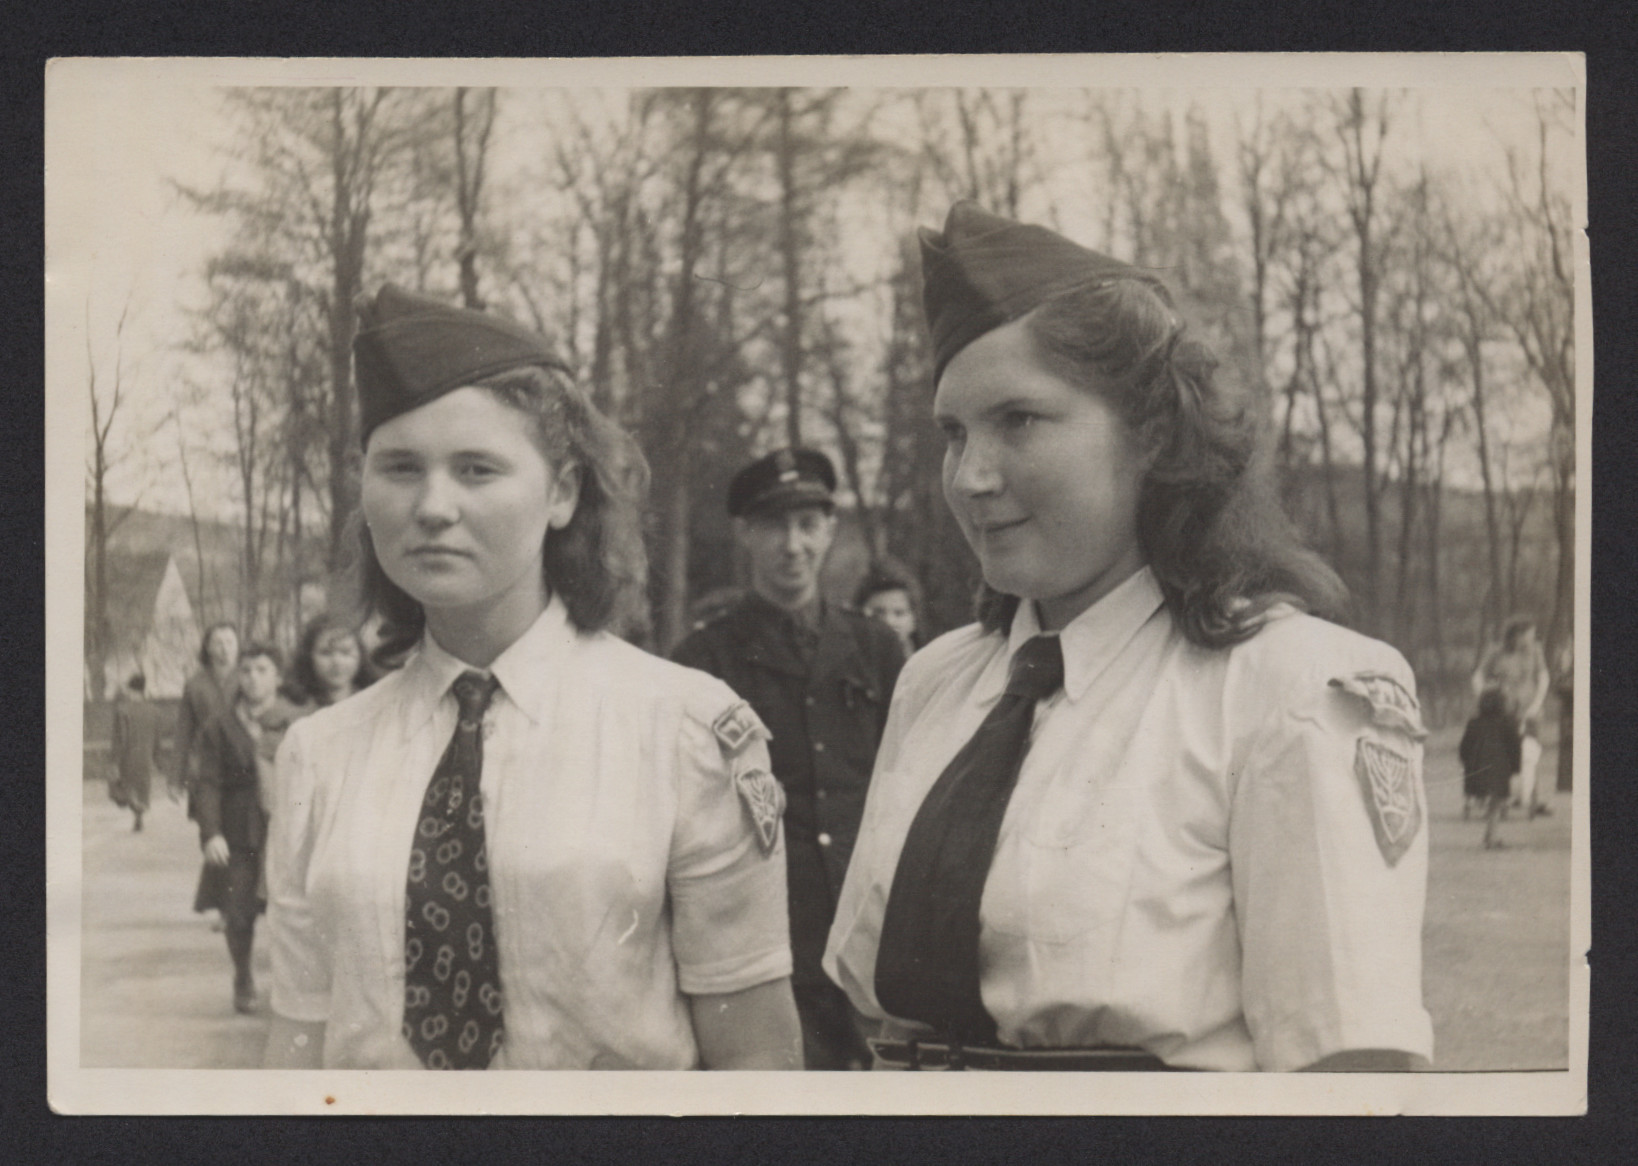 Close-up portrait of Lenka Gruenberg (right) and Maya Batarin wearing their Betar uniforms.